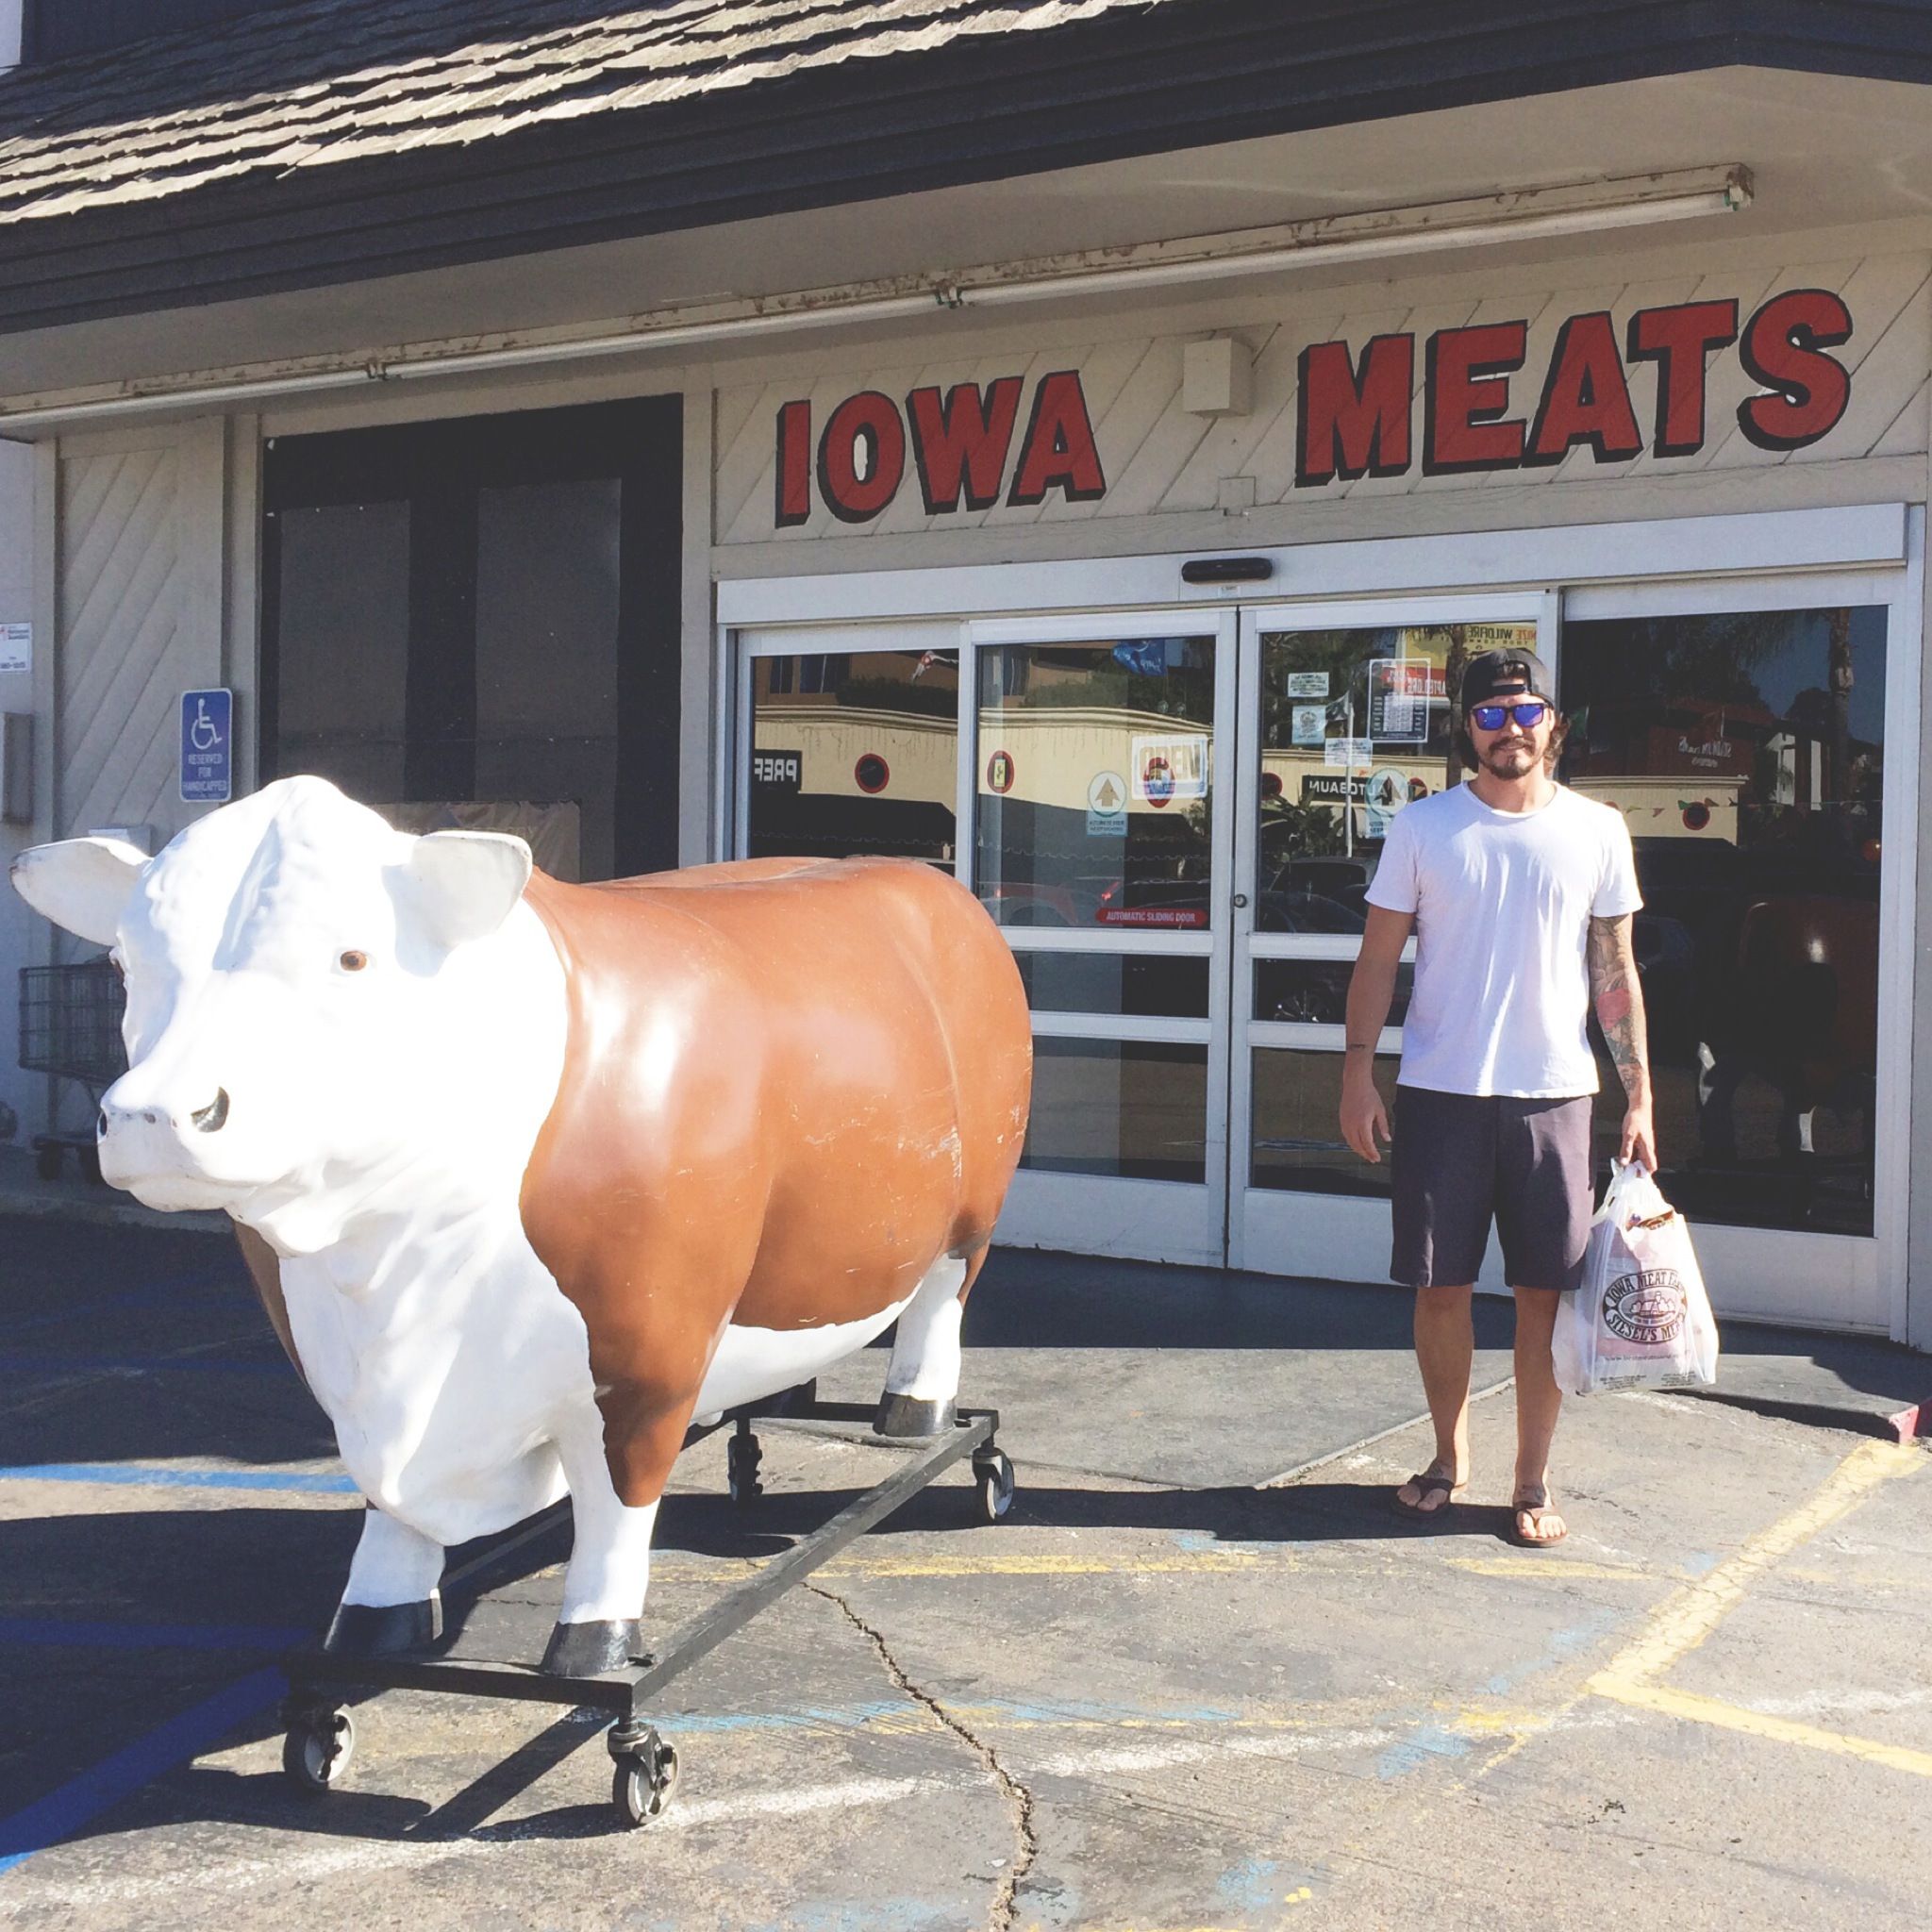 Thank God It's Monday! I was able to run some errands with my favorites! Iowa Meat Market Is THE SHIZZZ!